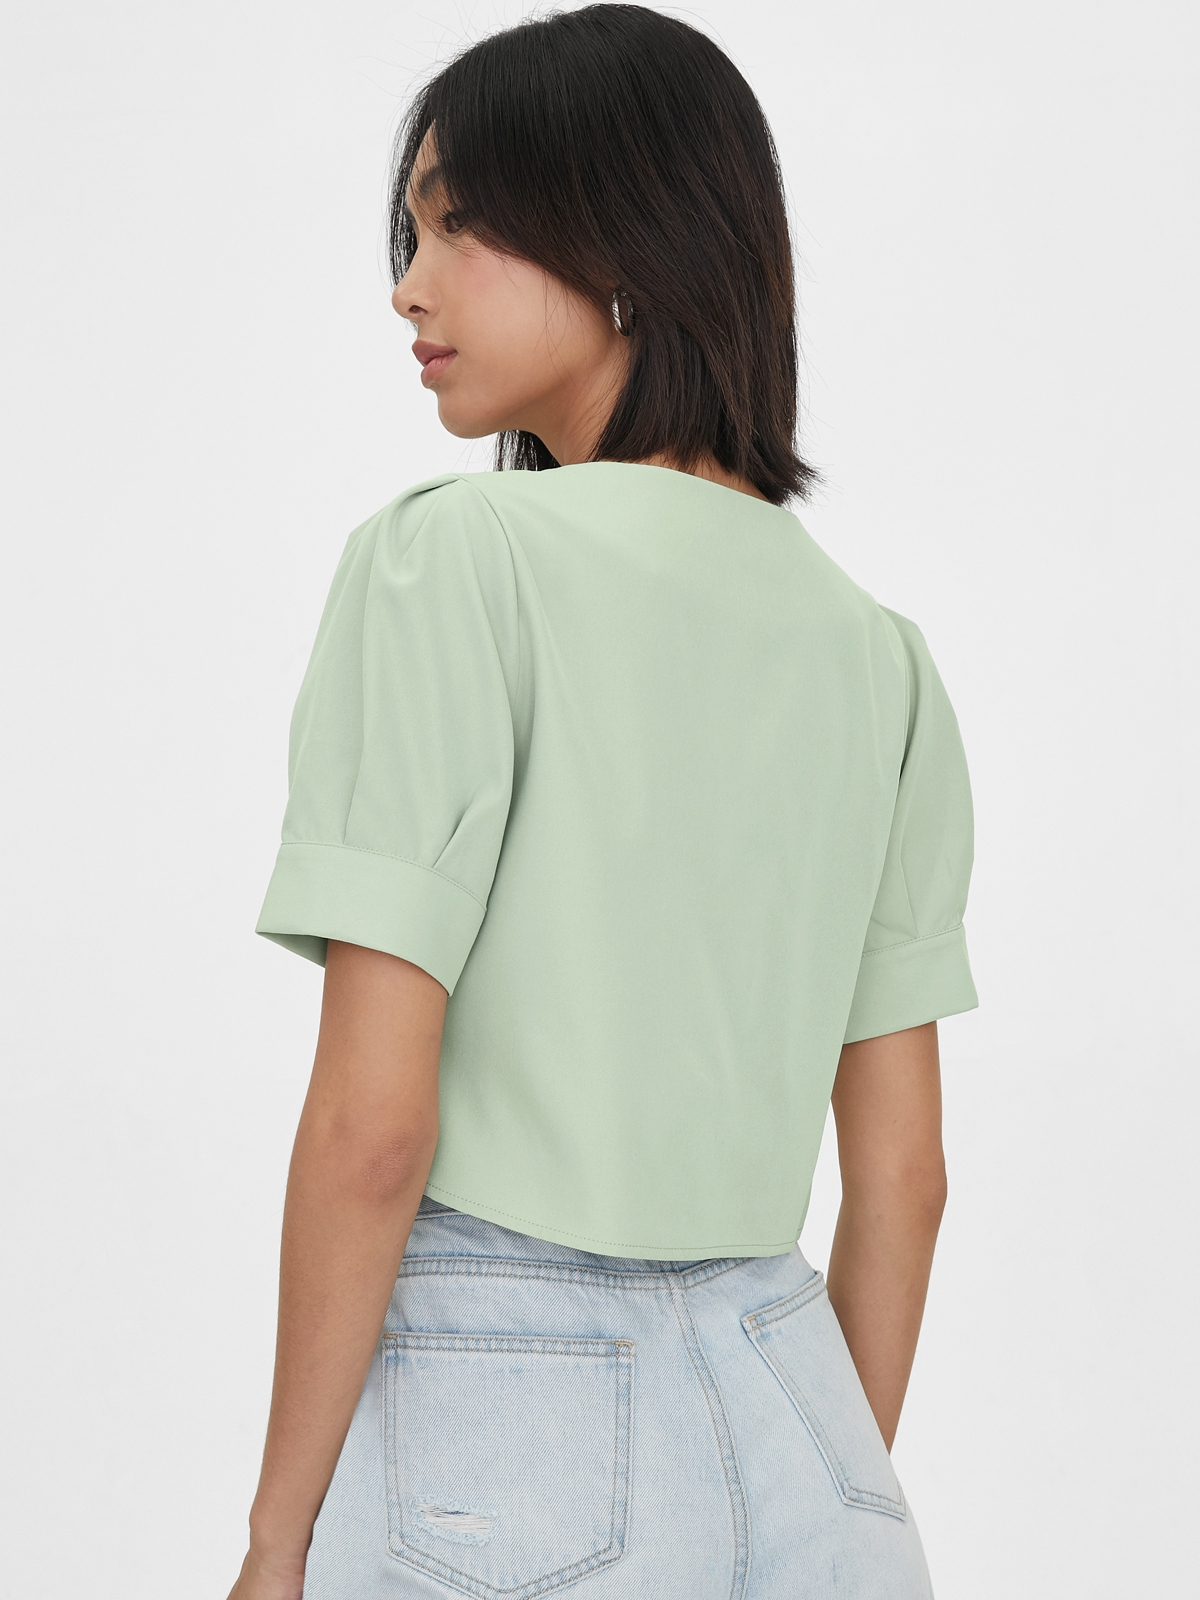 Heart Shaped Button Puff Sleeves Top Green